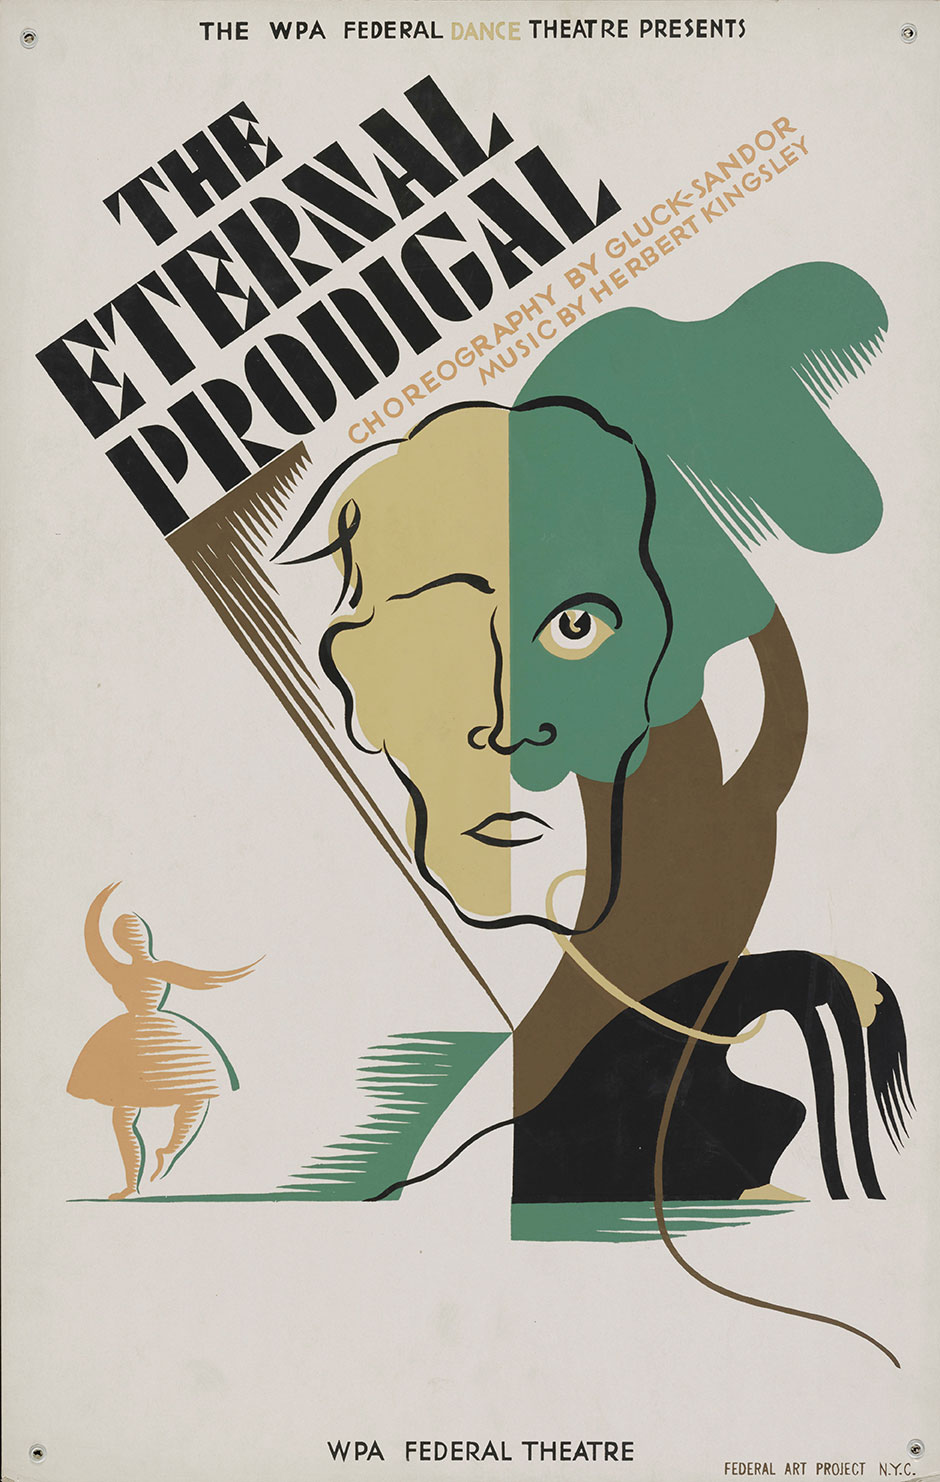 gdc-wpa-theatrical-posters-prodigal.jpg